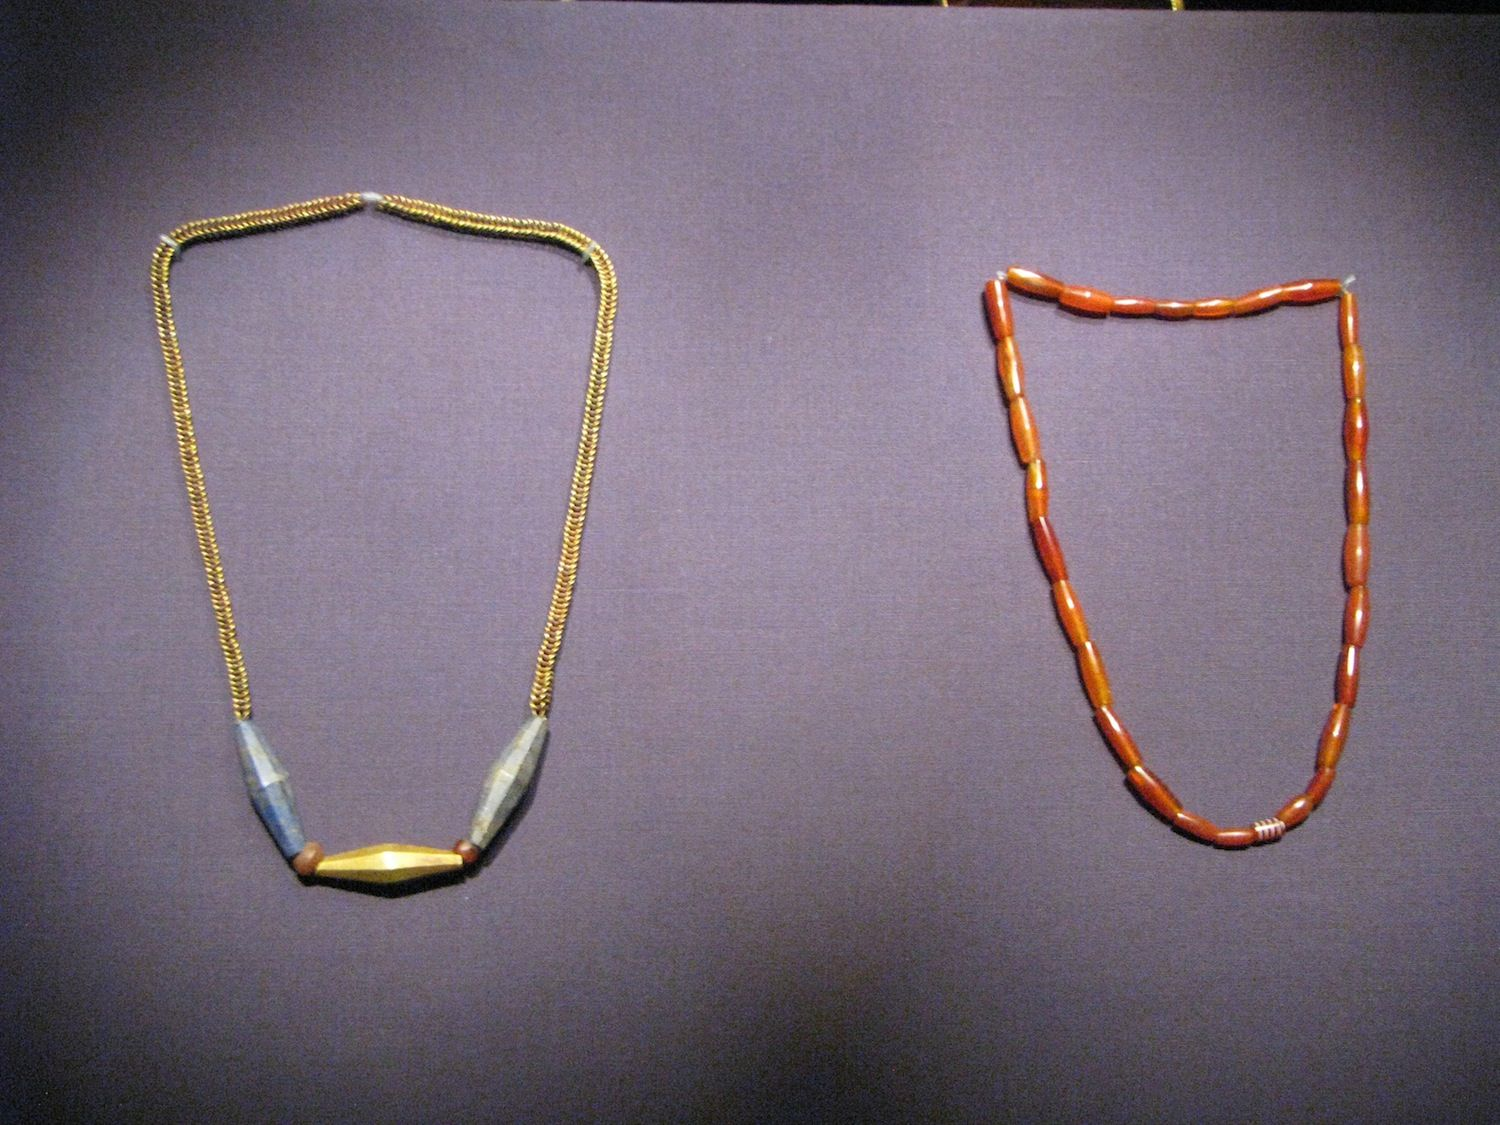 The headdress on the left is from the Ur royal cemetery. It is made of gold and lapis lazuli and would have been worn by a male. The necklace in the right is made of carnelian beads. It is also from Ur's royal cemetery and it has white etching, which was produced using a technique the Mesopotamians learned from the Indus Valley Civilization in South Asia.